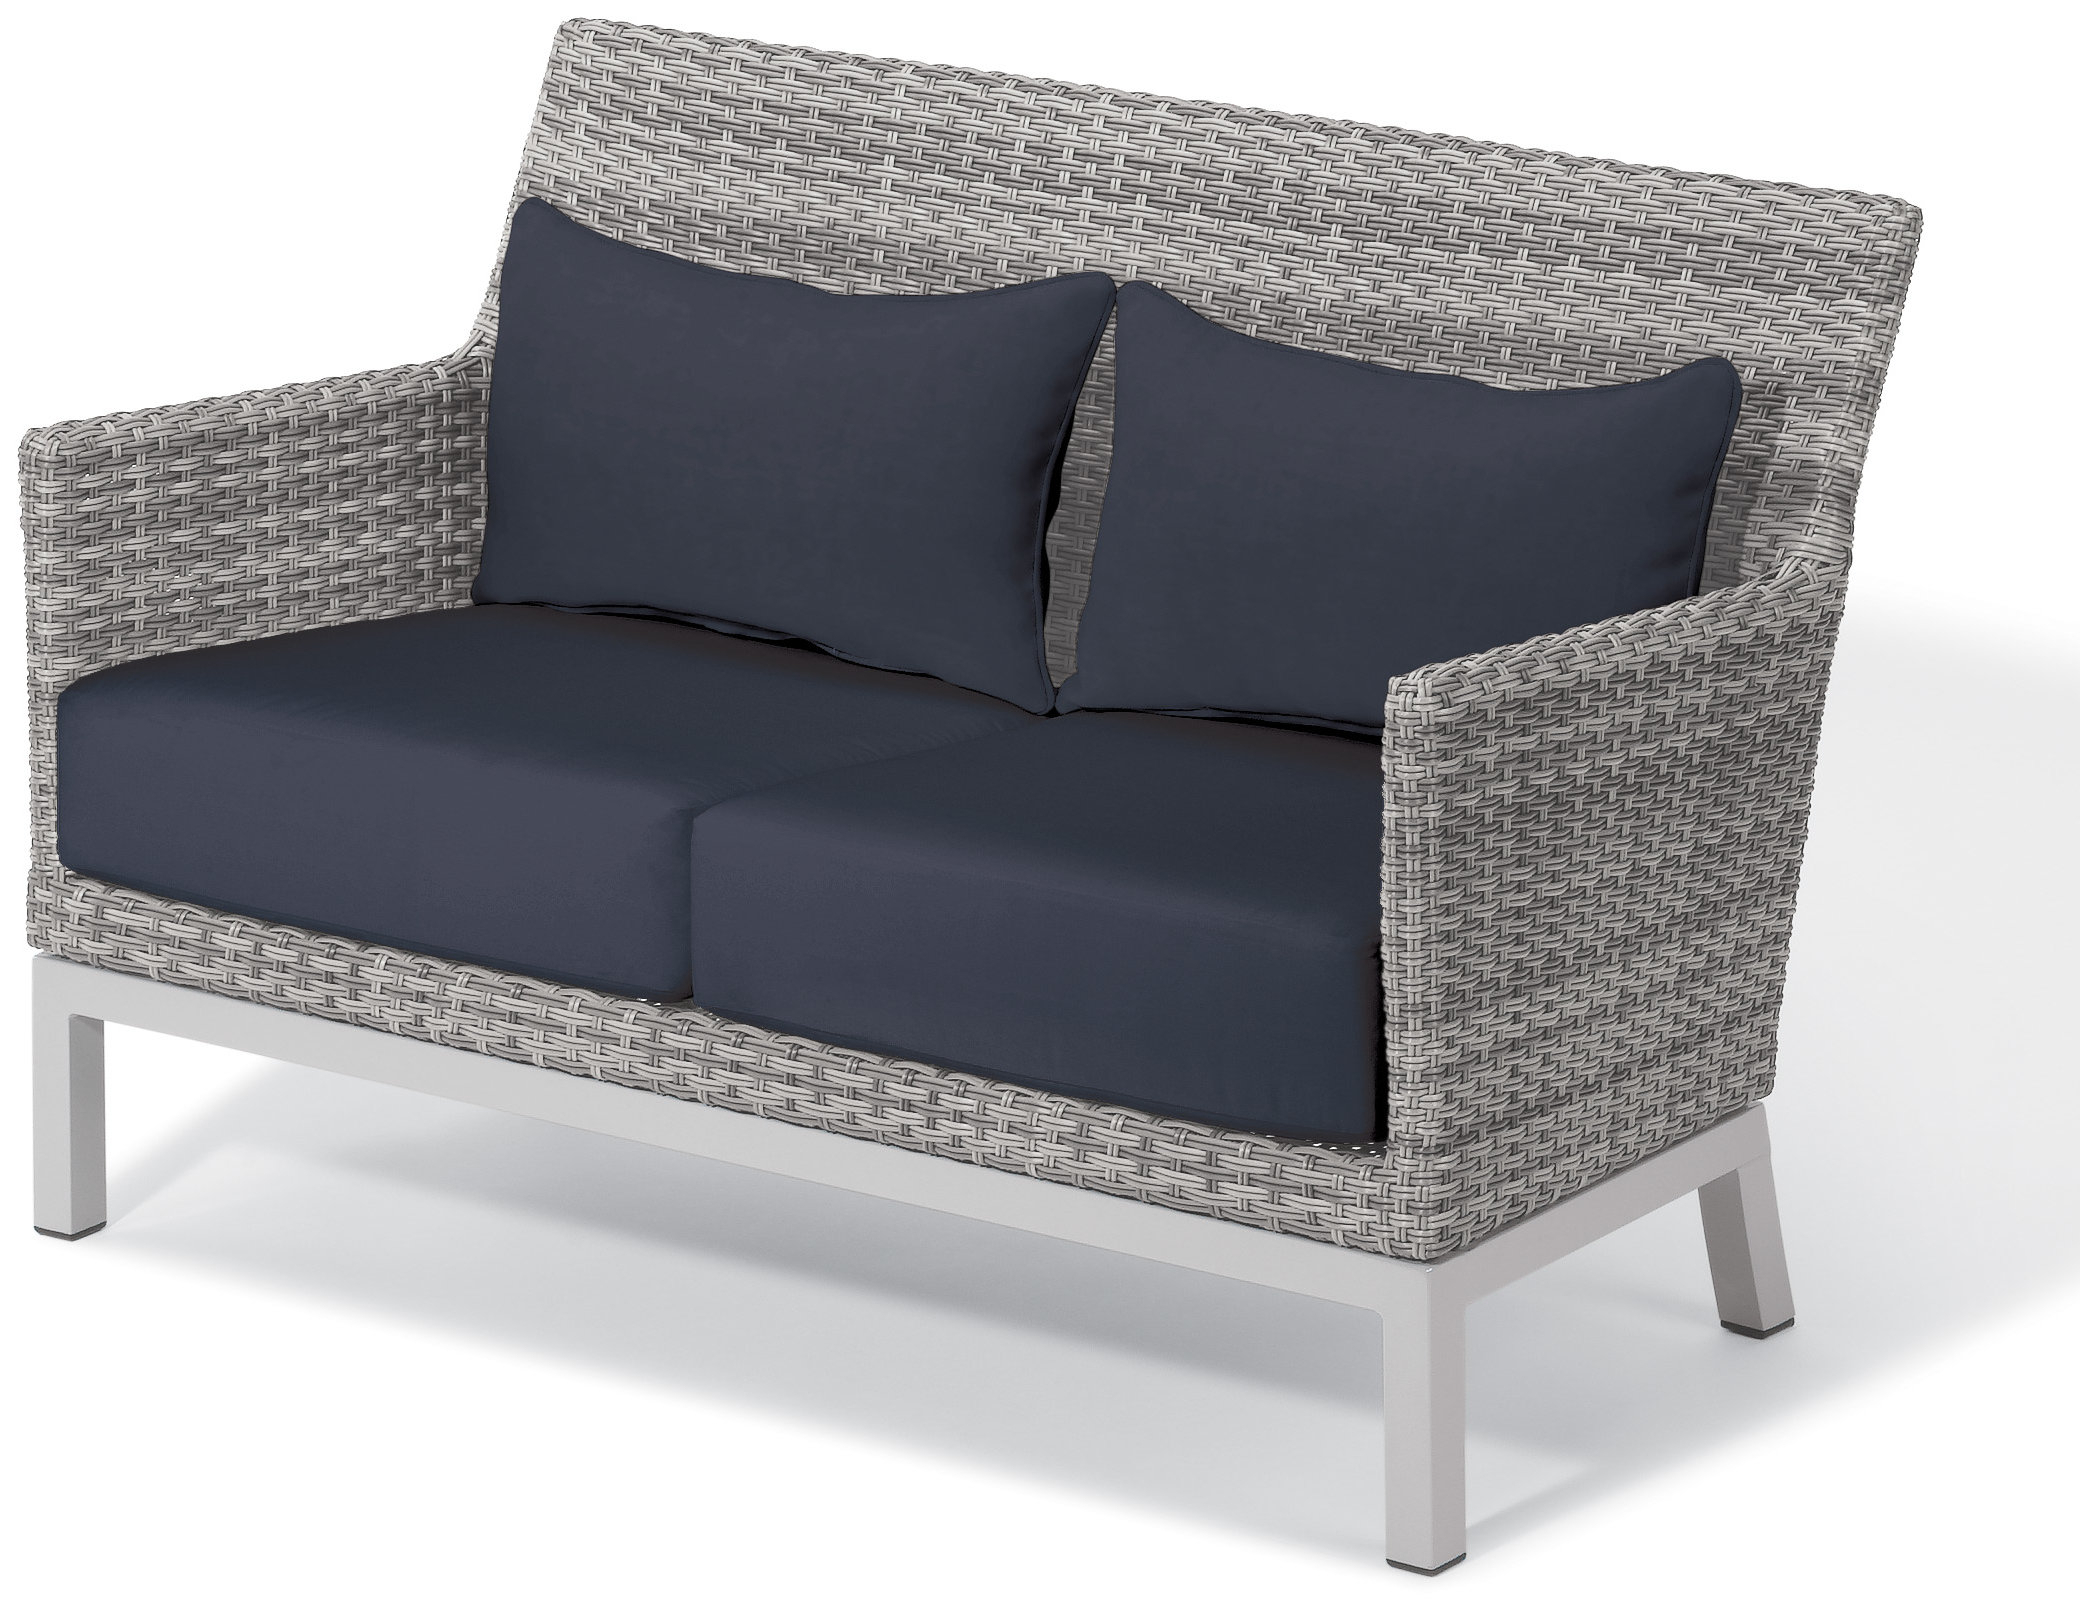 Mendelson Loveseats With Cushion Regarding Favorite Saleem Loveseat With Cushions (View 16 of 20)